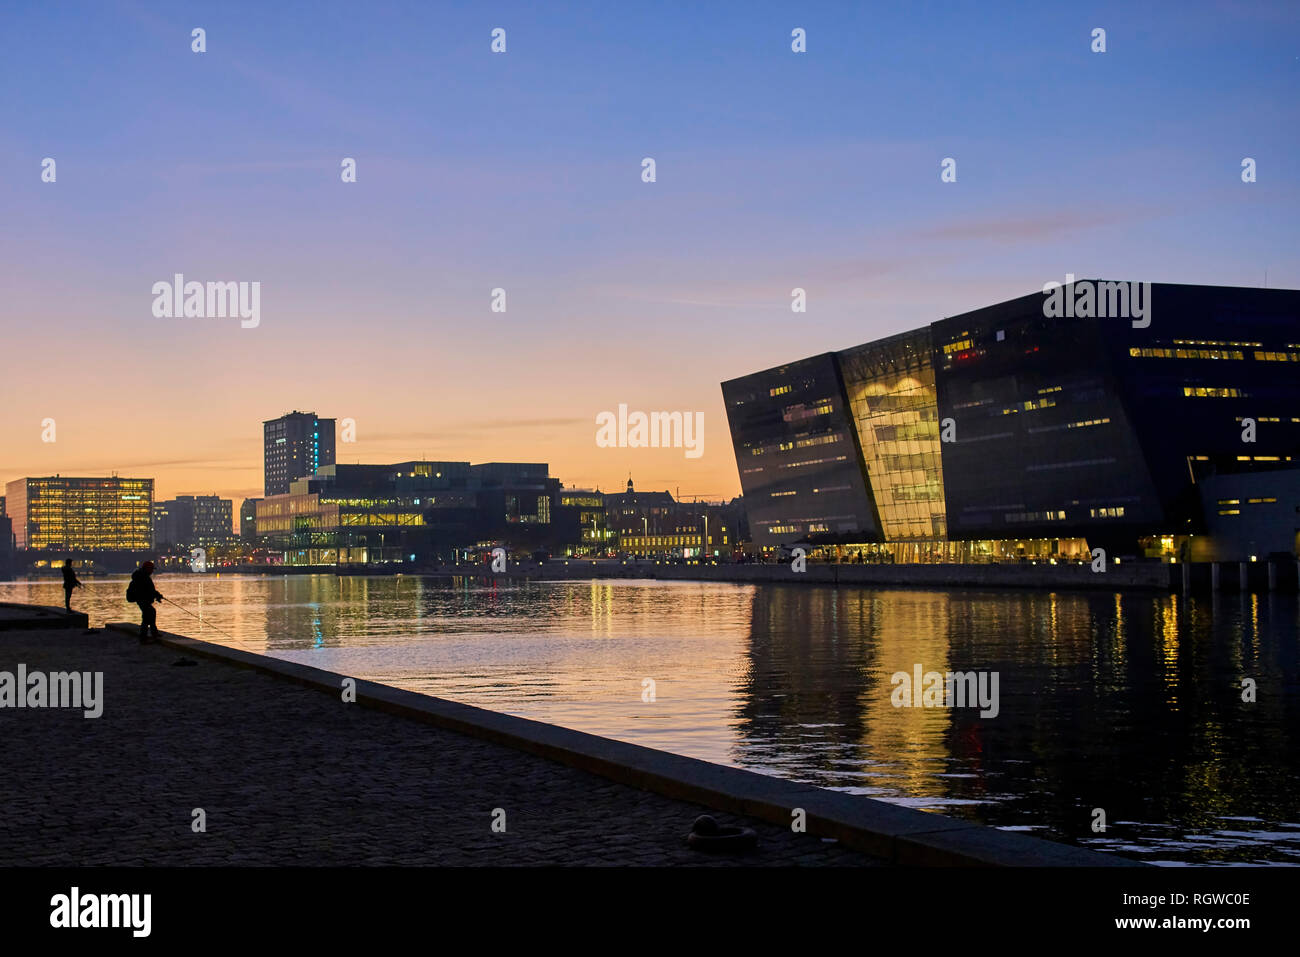 The Black Diamond, Royal Danish Library at night with water reflections, Copenhagen, Denmark, October 2018 Stock Photo